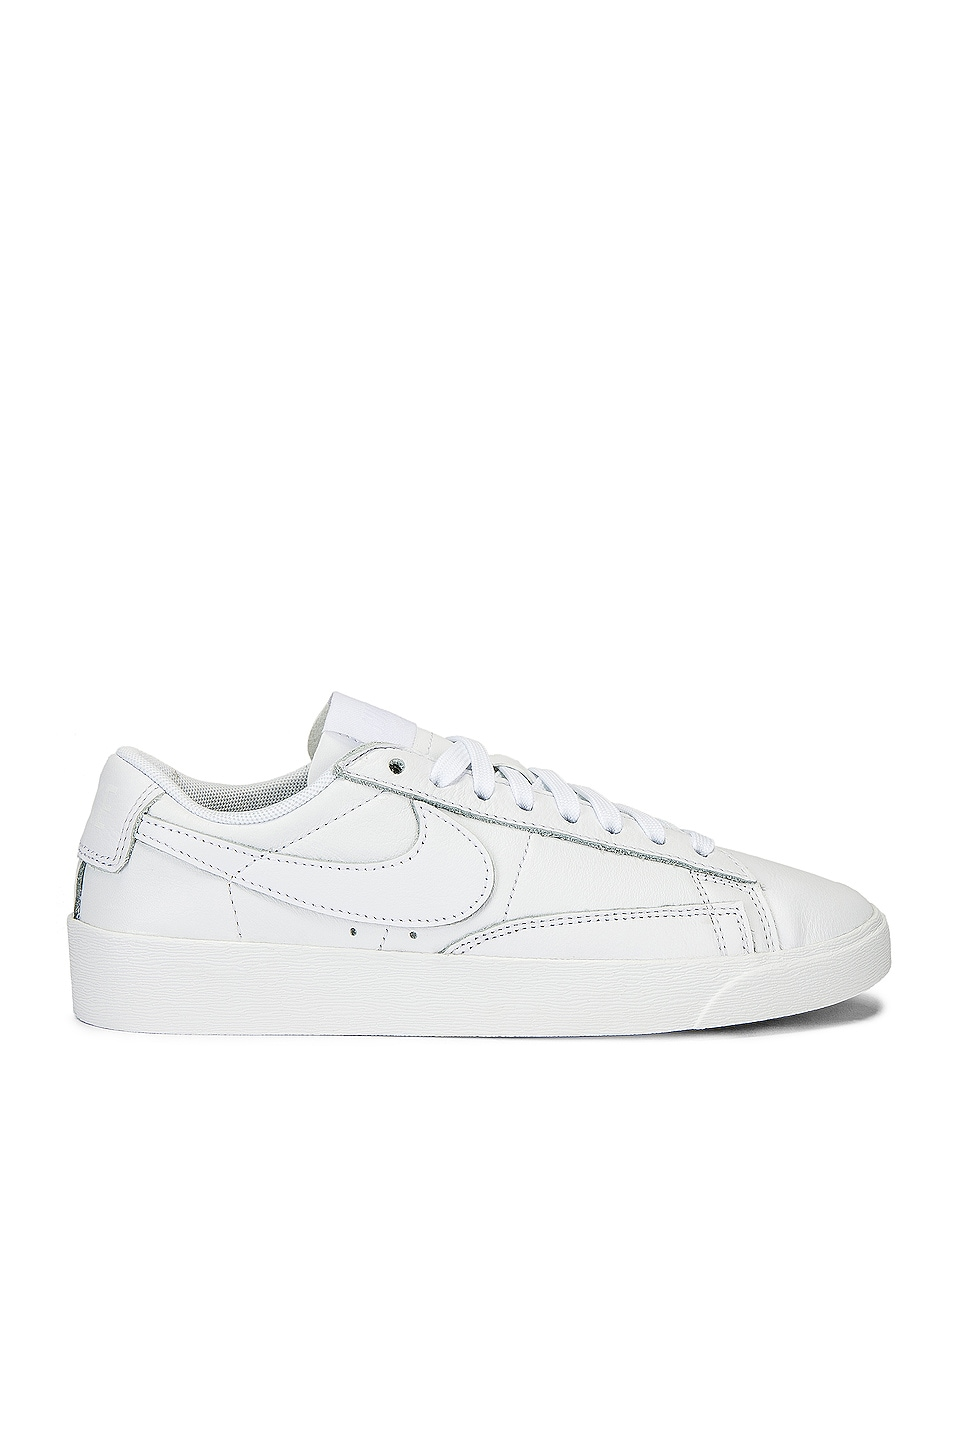 Nike Blazer Low LE Sneaker in White